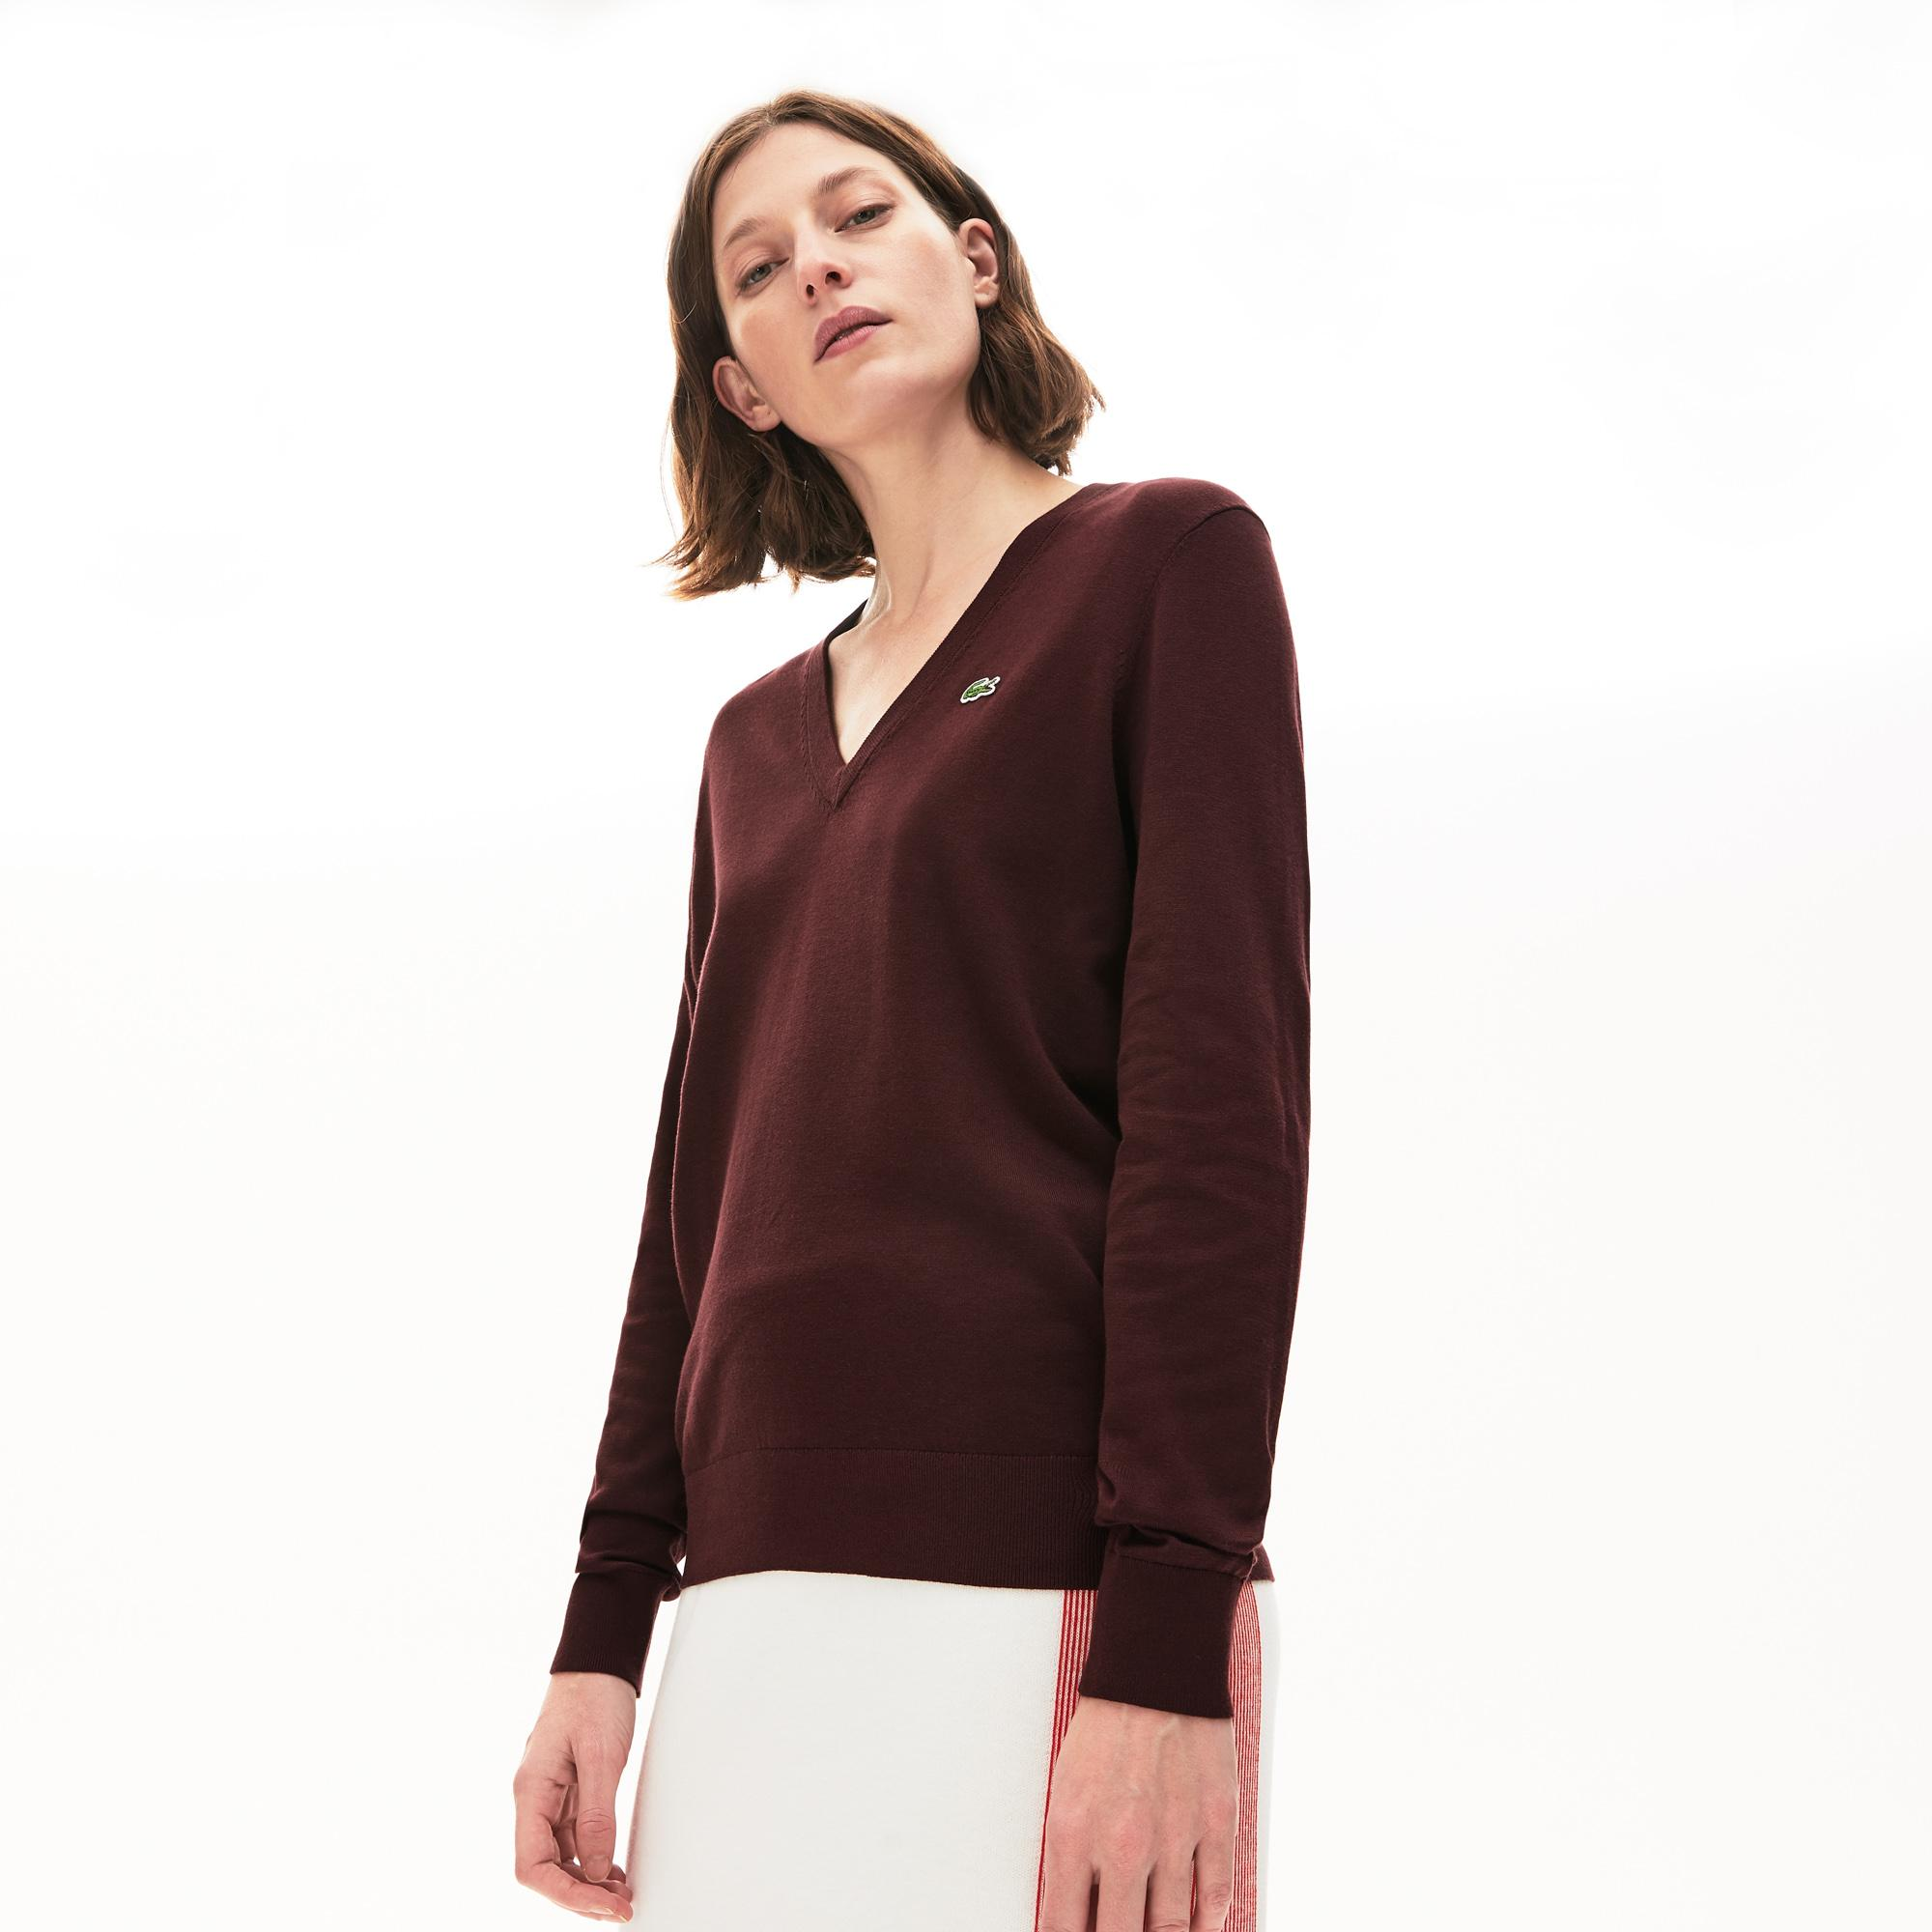 Lacoste Women's Solid Cotton V-Neck Sweater